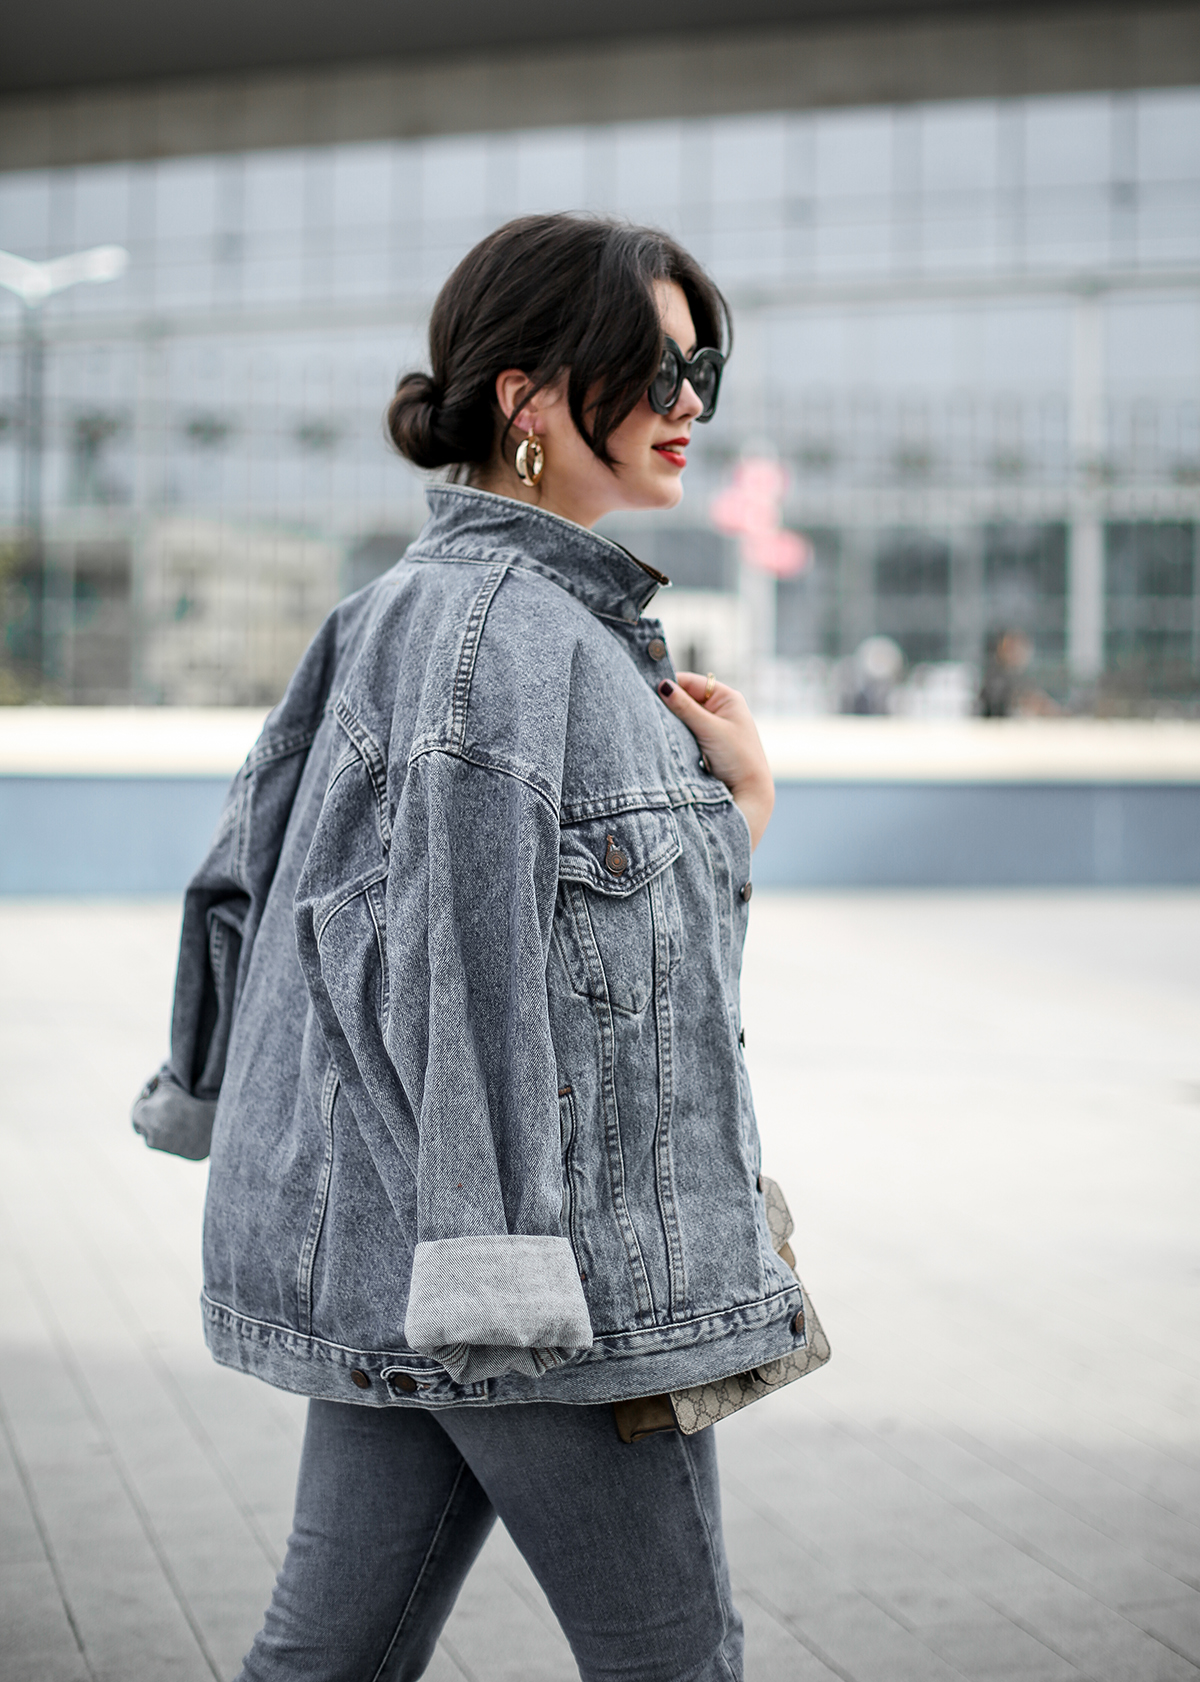 denim-total-look-levis-girl-vintage-gucci-horsebit-shoes-dionysus-bag12